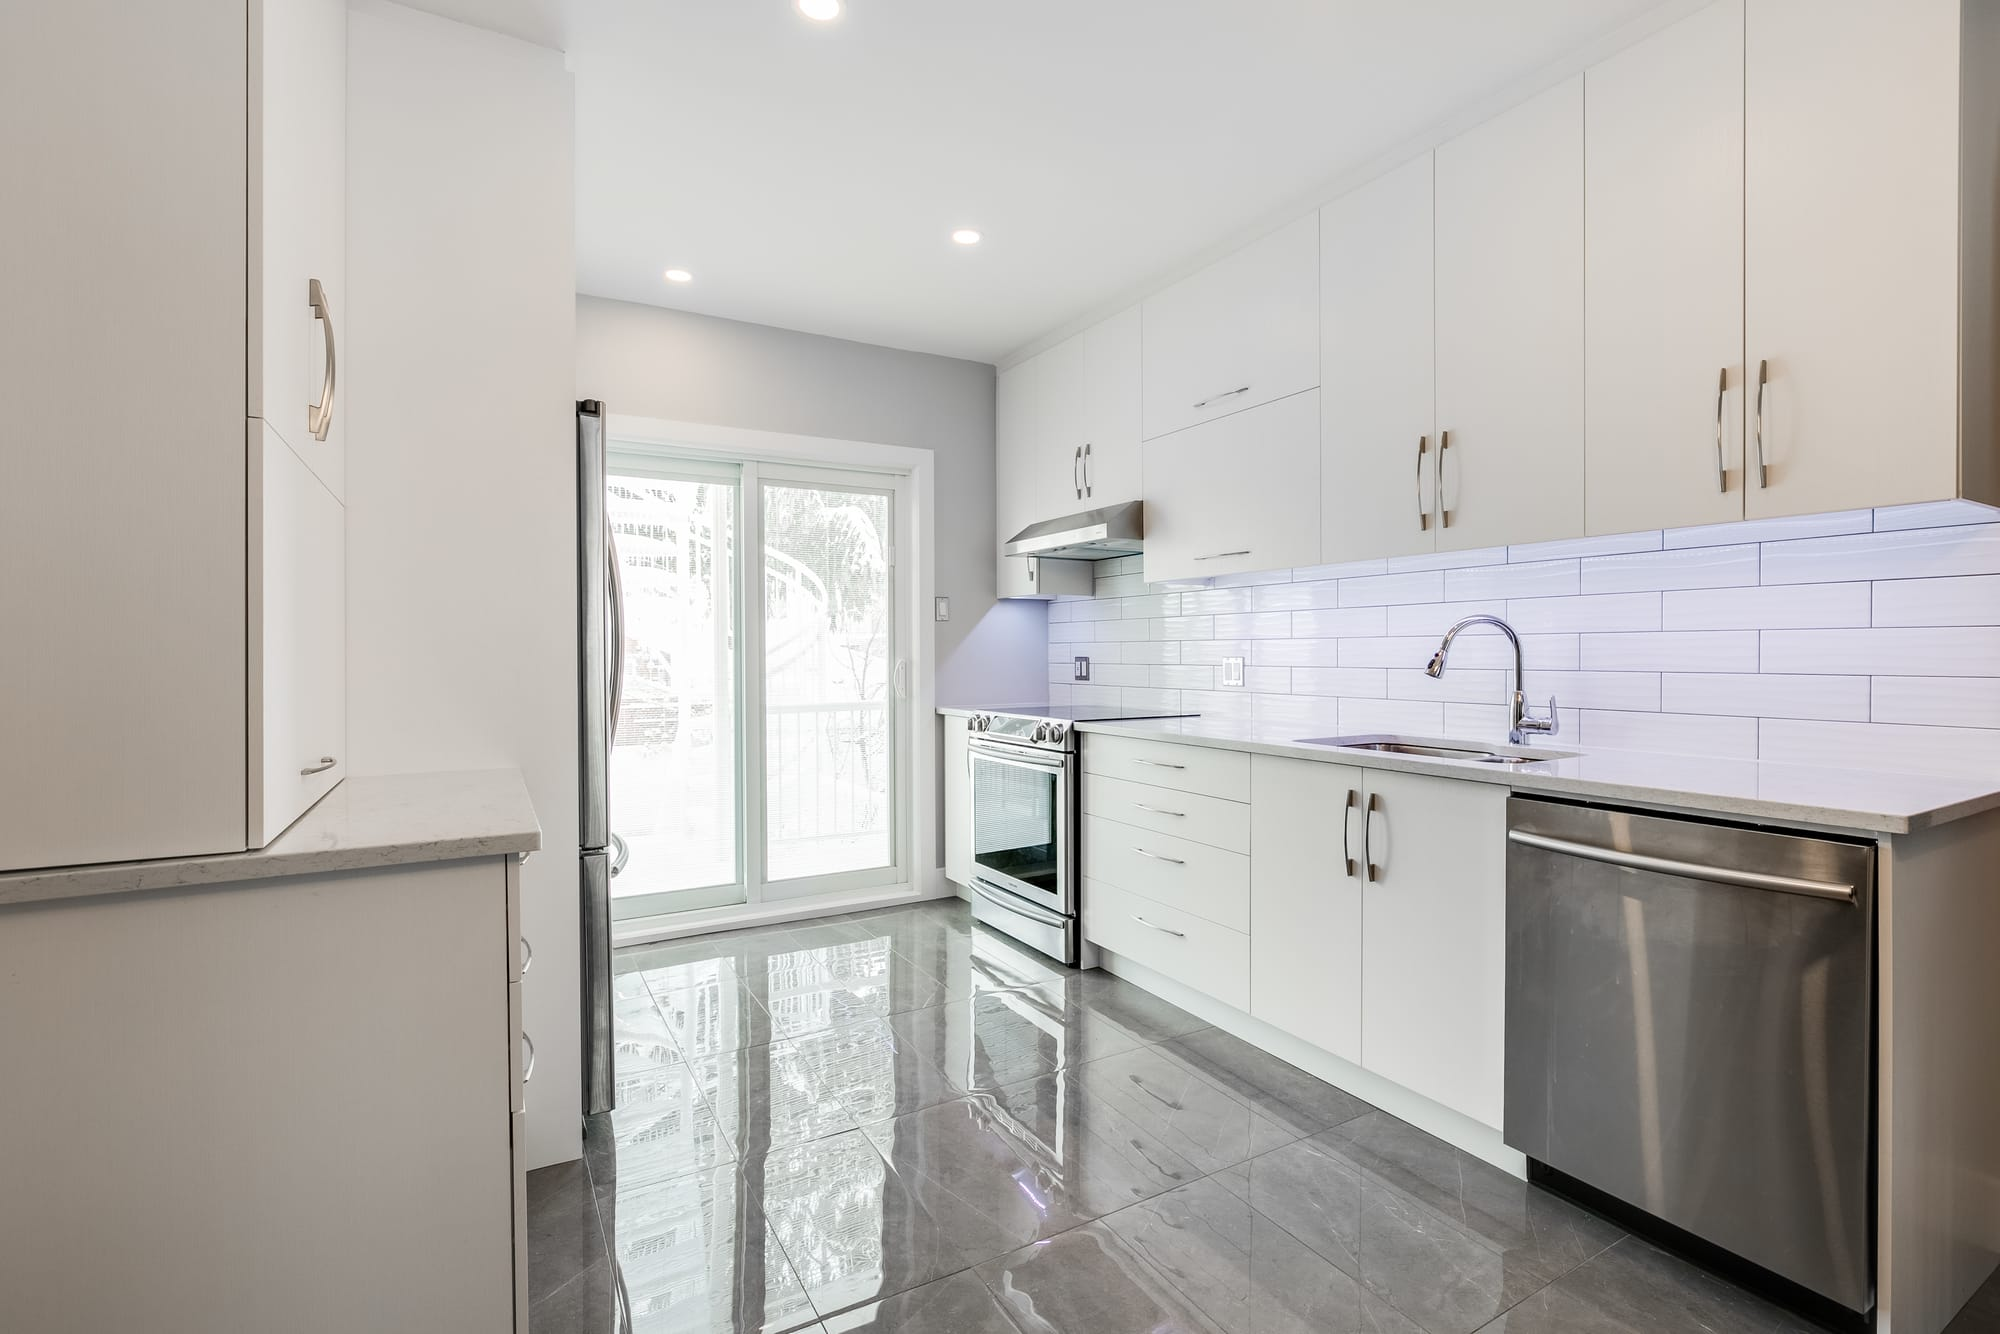 white kitchen with grey ceramic floor and a stainless steel dishwasher